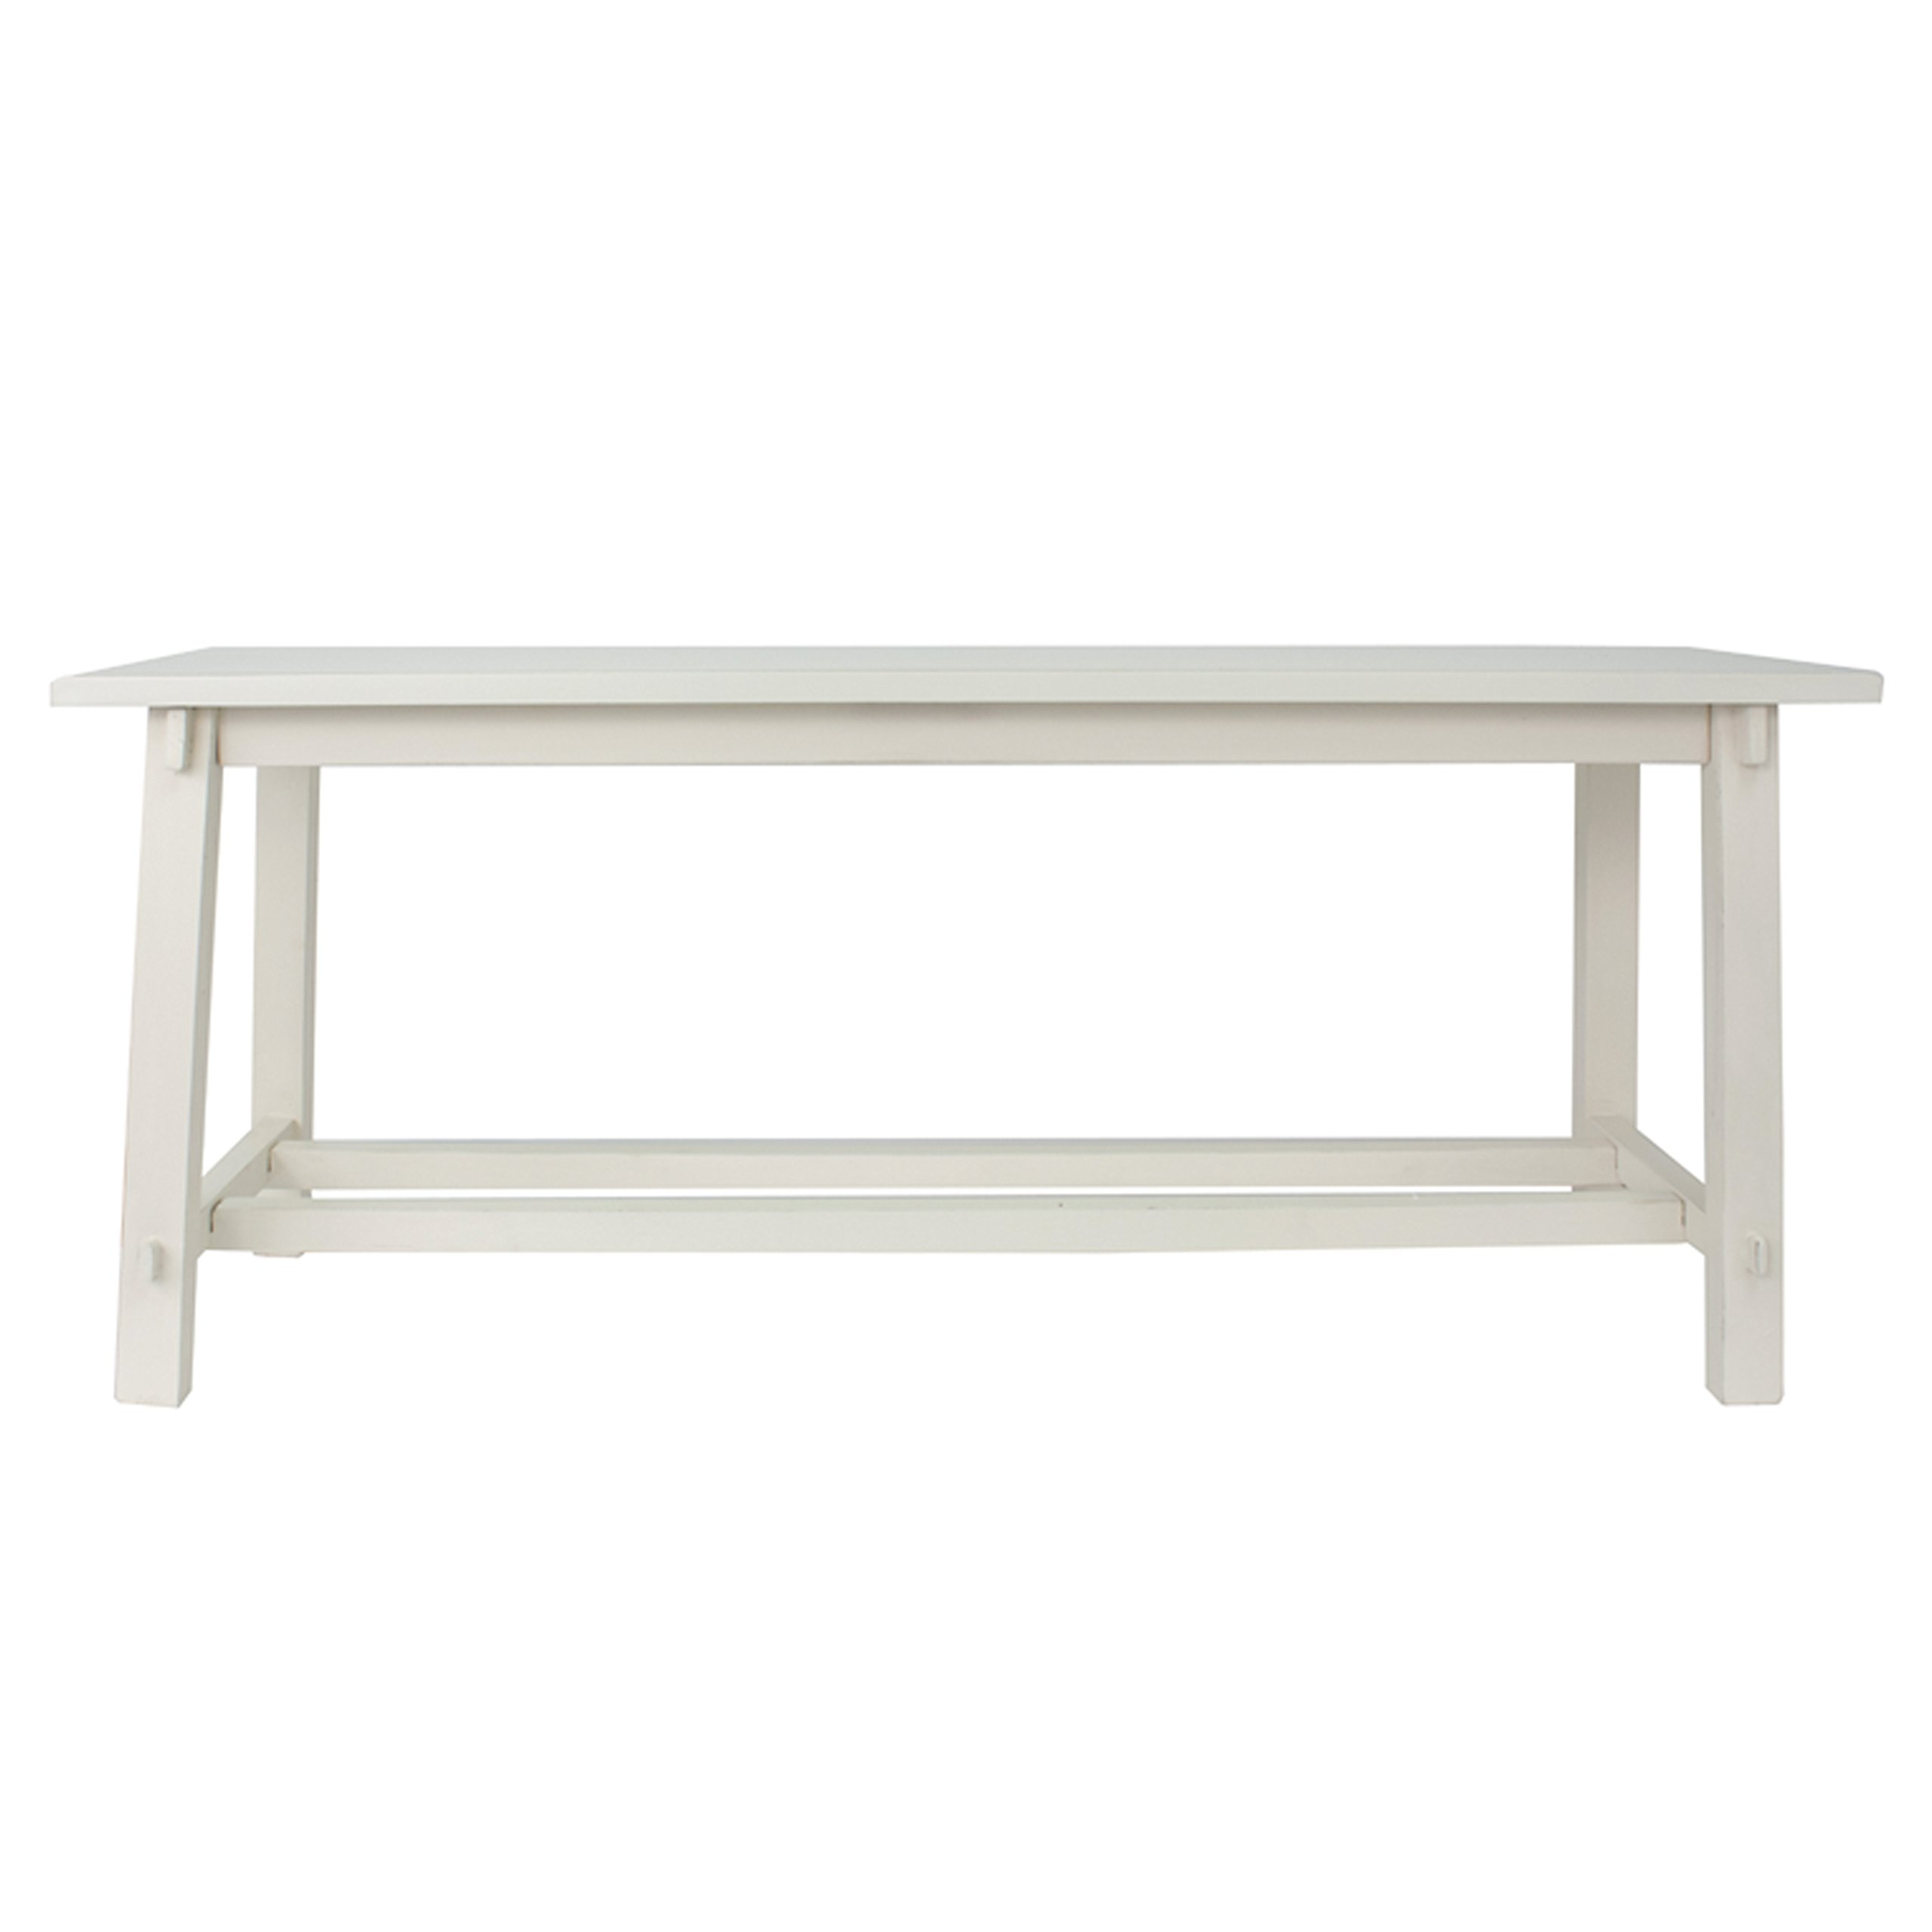 Décor Therapy FR1592 Bench, Antique White by Decor Therapy